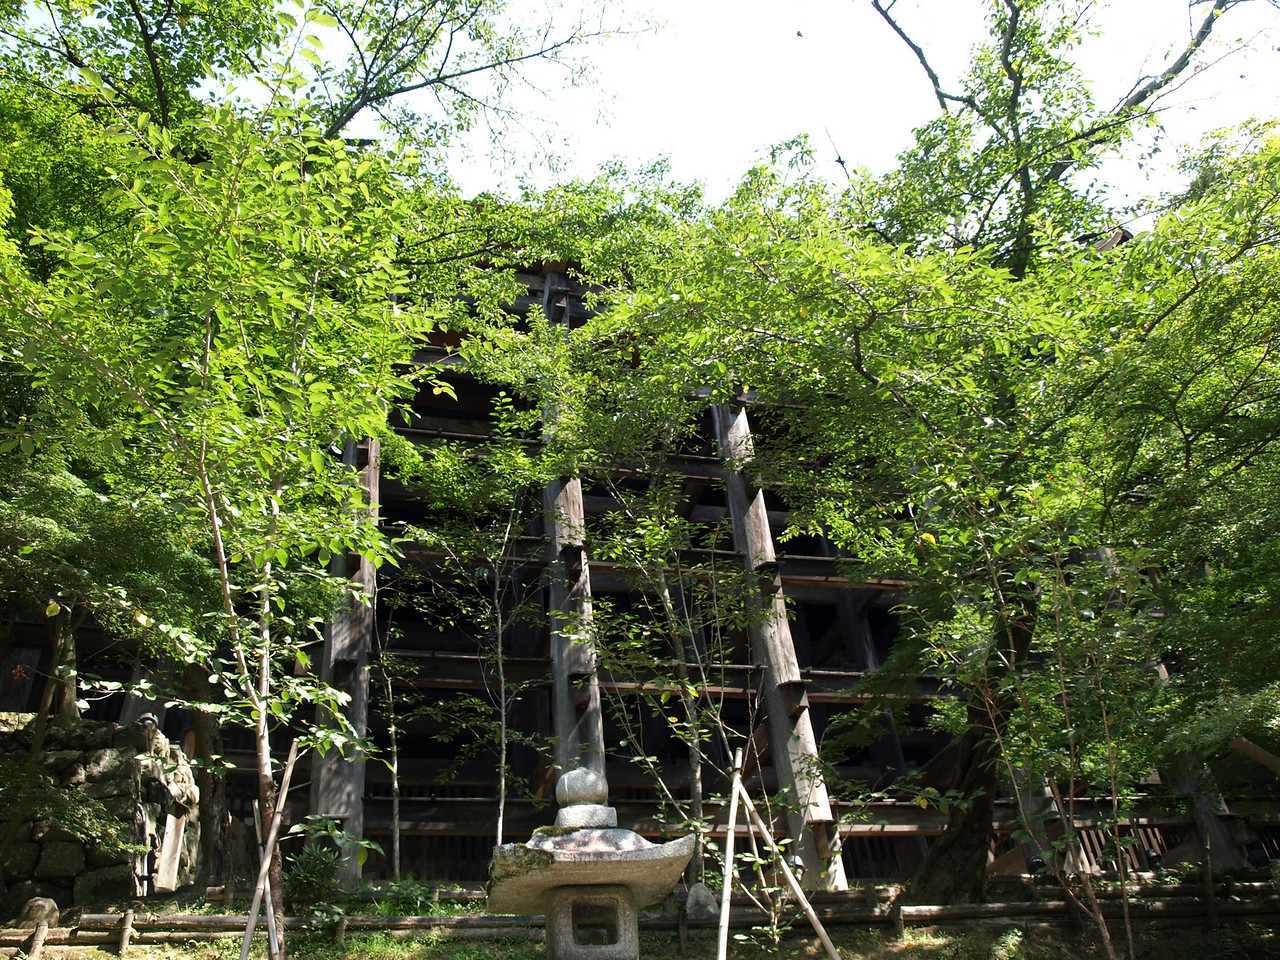 A view of the main hall from the bottom showing the stilts.